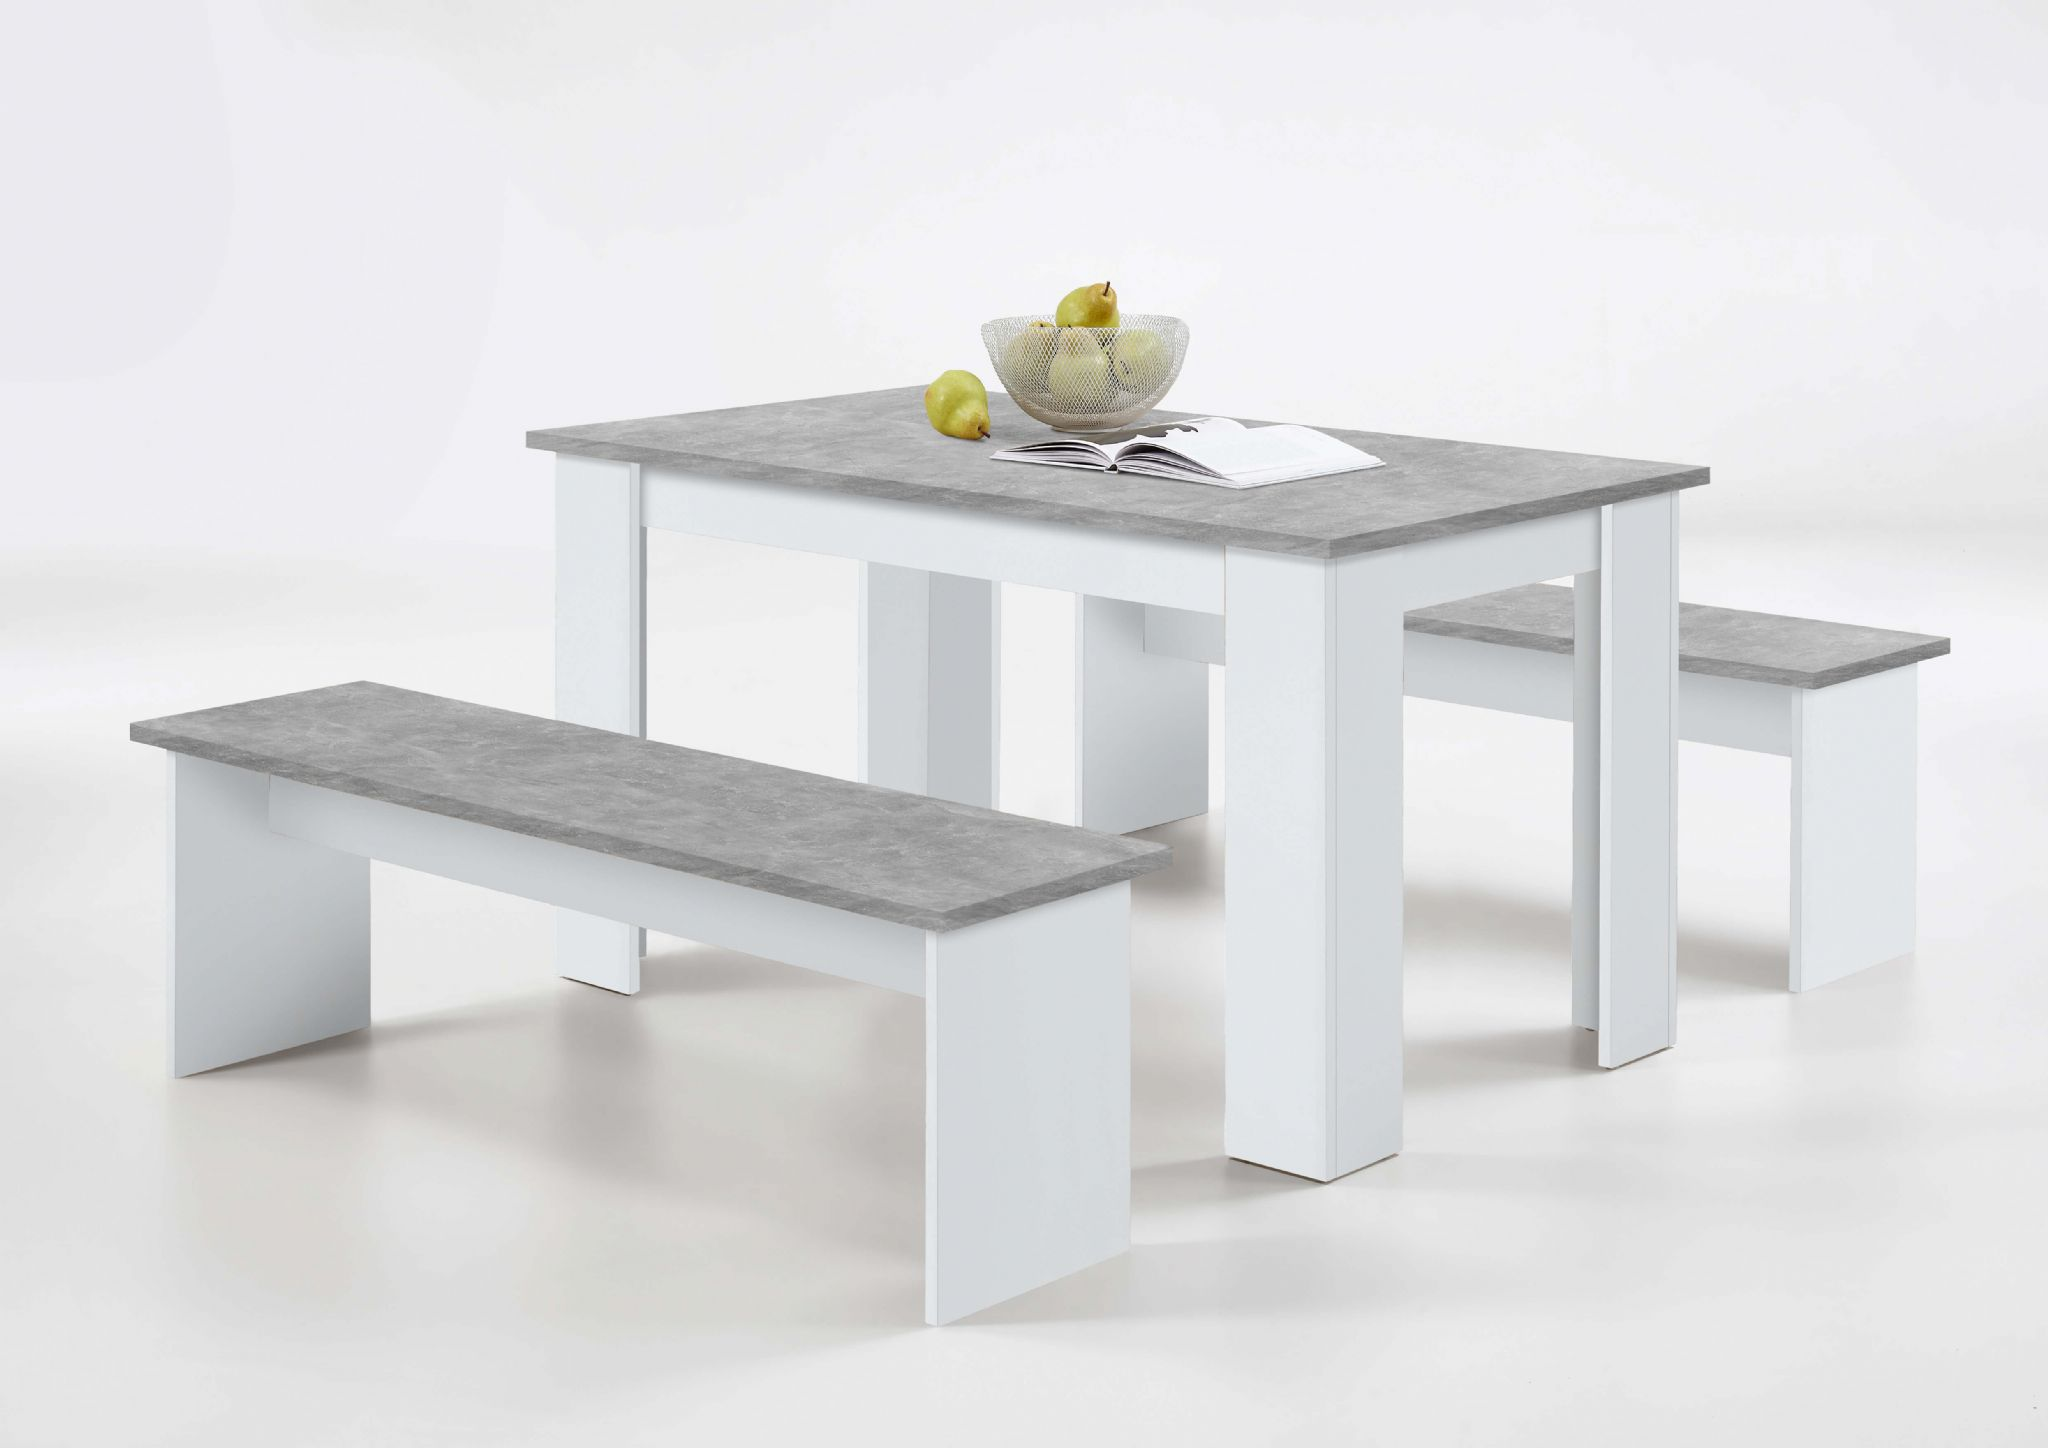 Merveilleux Durban White And Grey Dining Table With Bench Seats